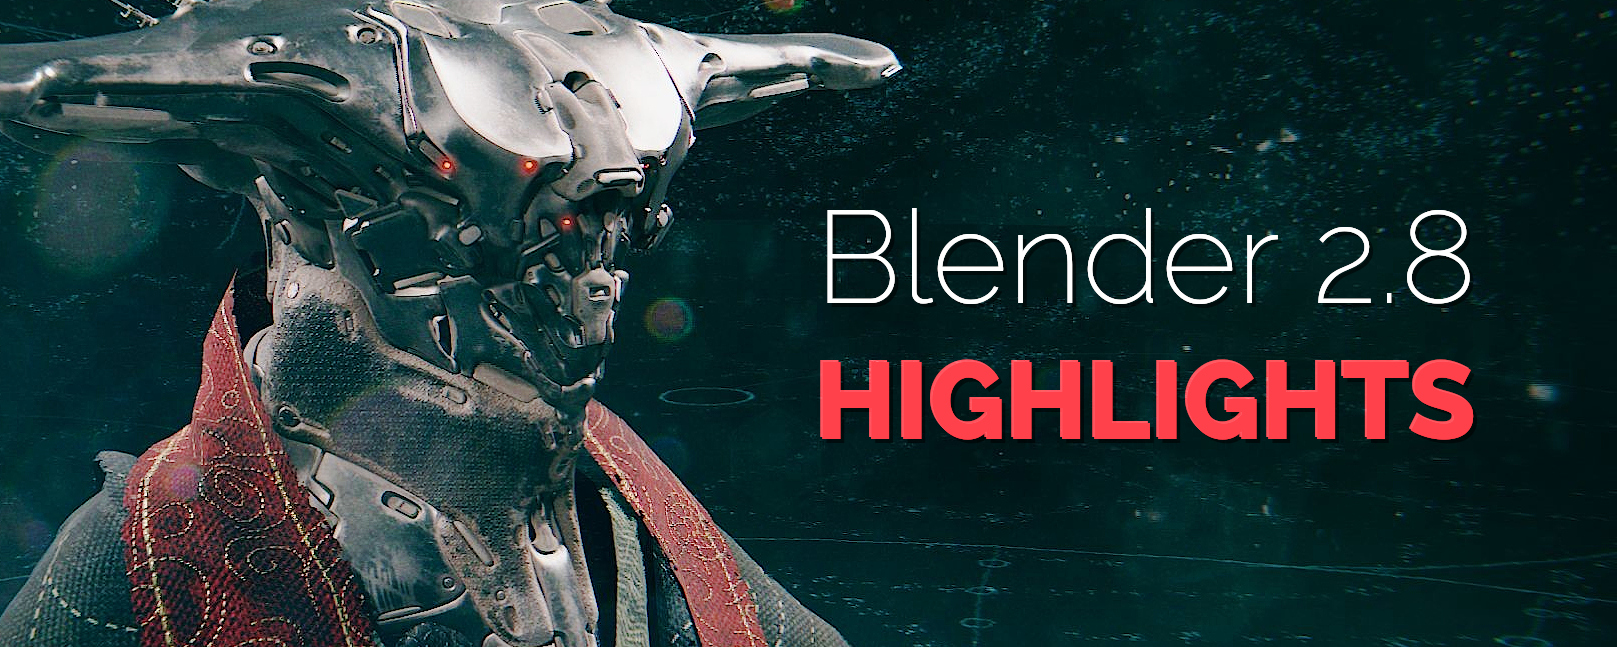 Blender 2.8 Highlights